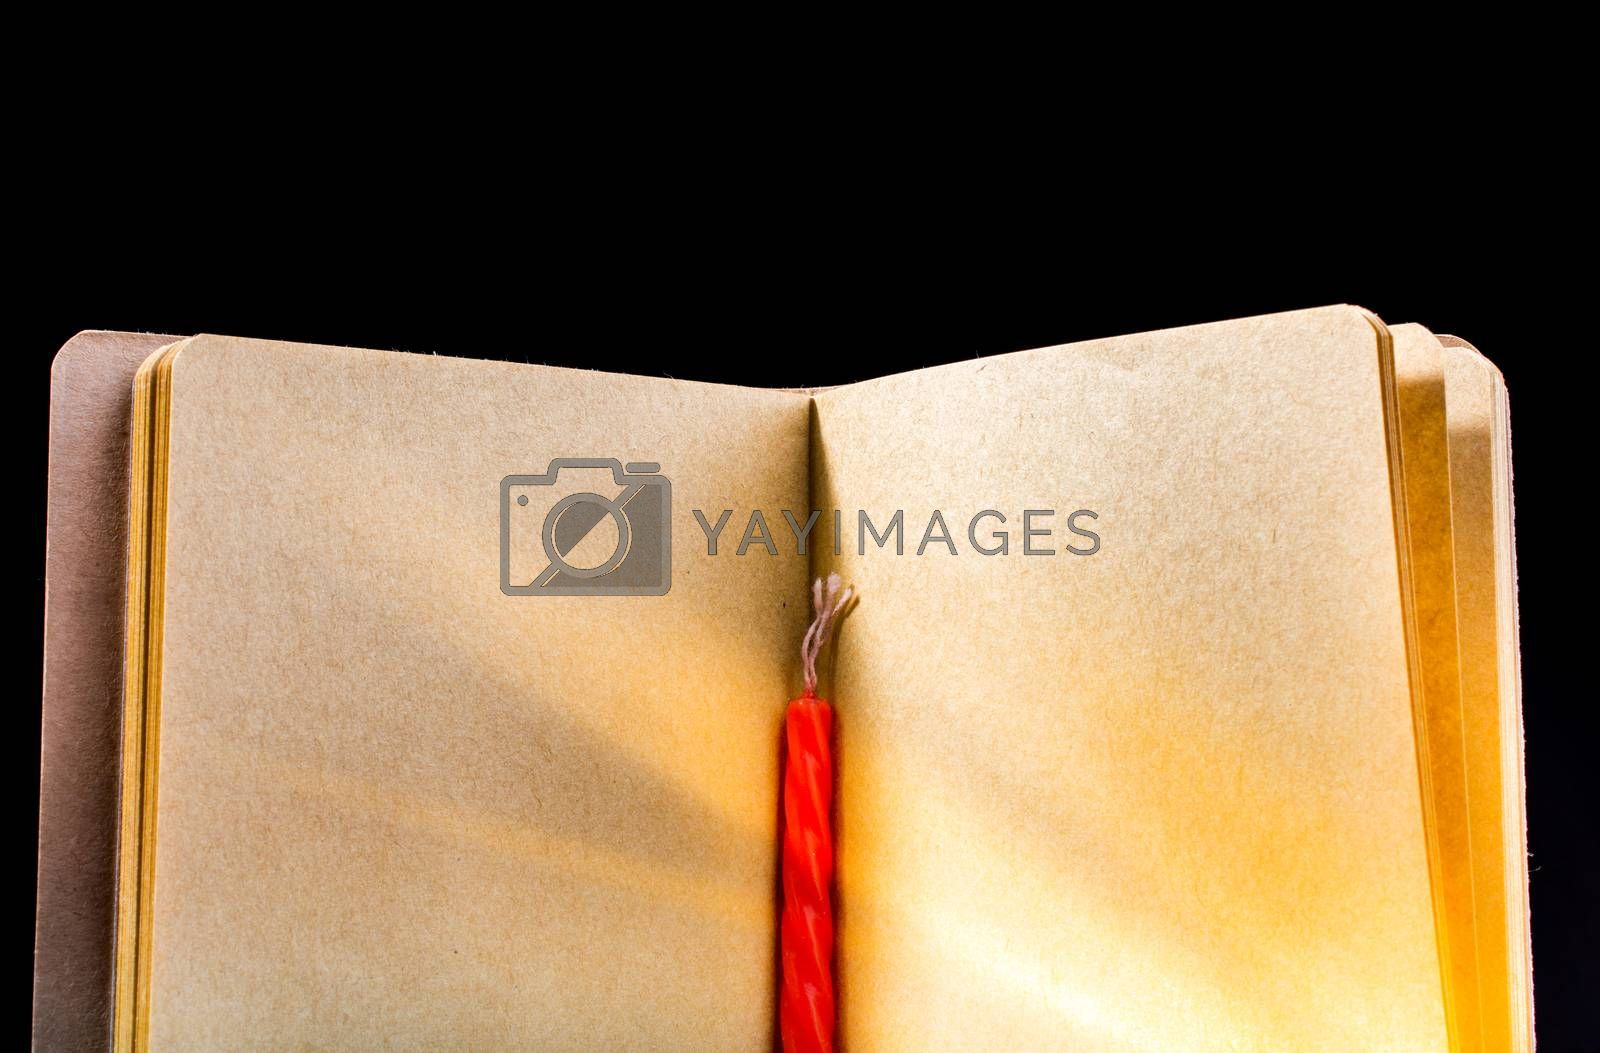 Candle and open brown color notebook on a black background